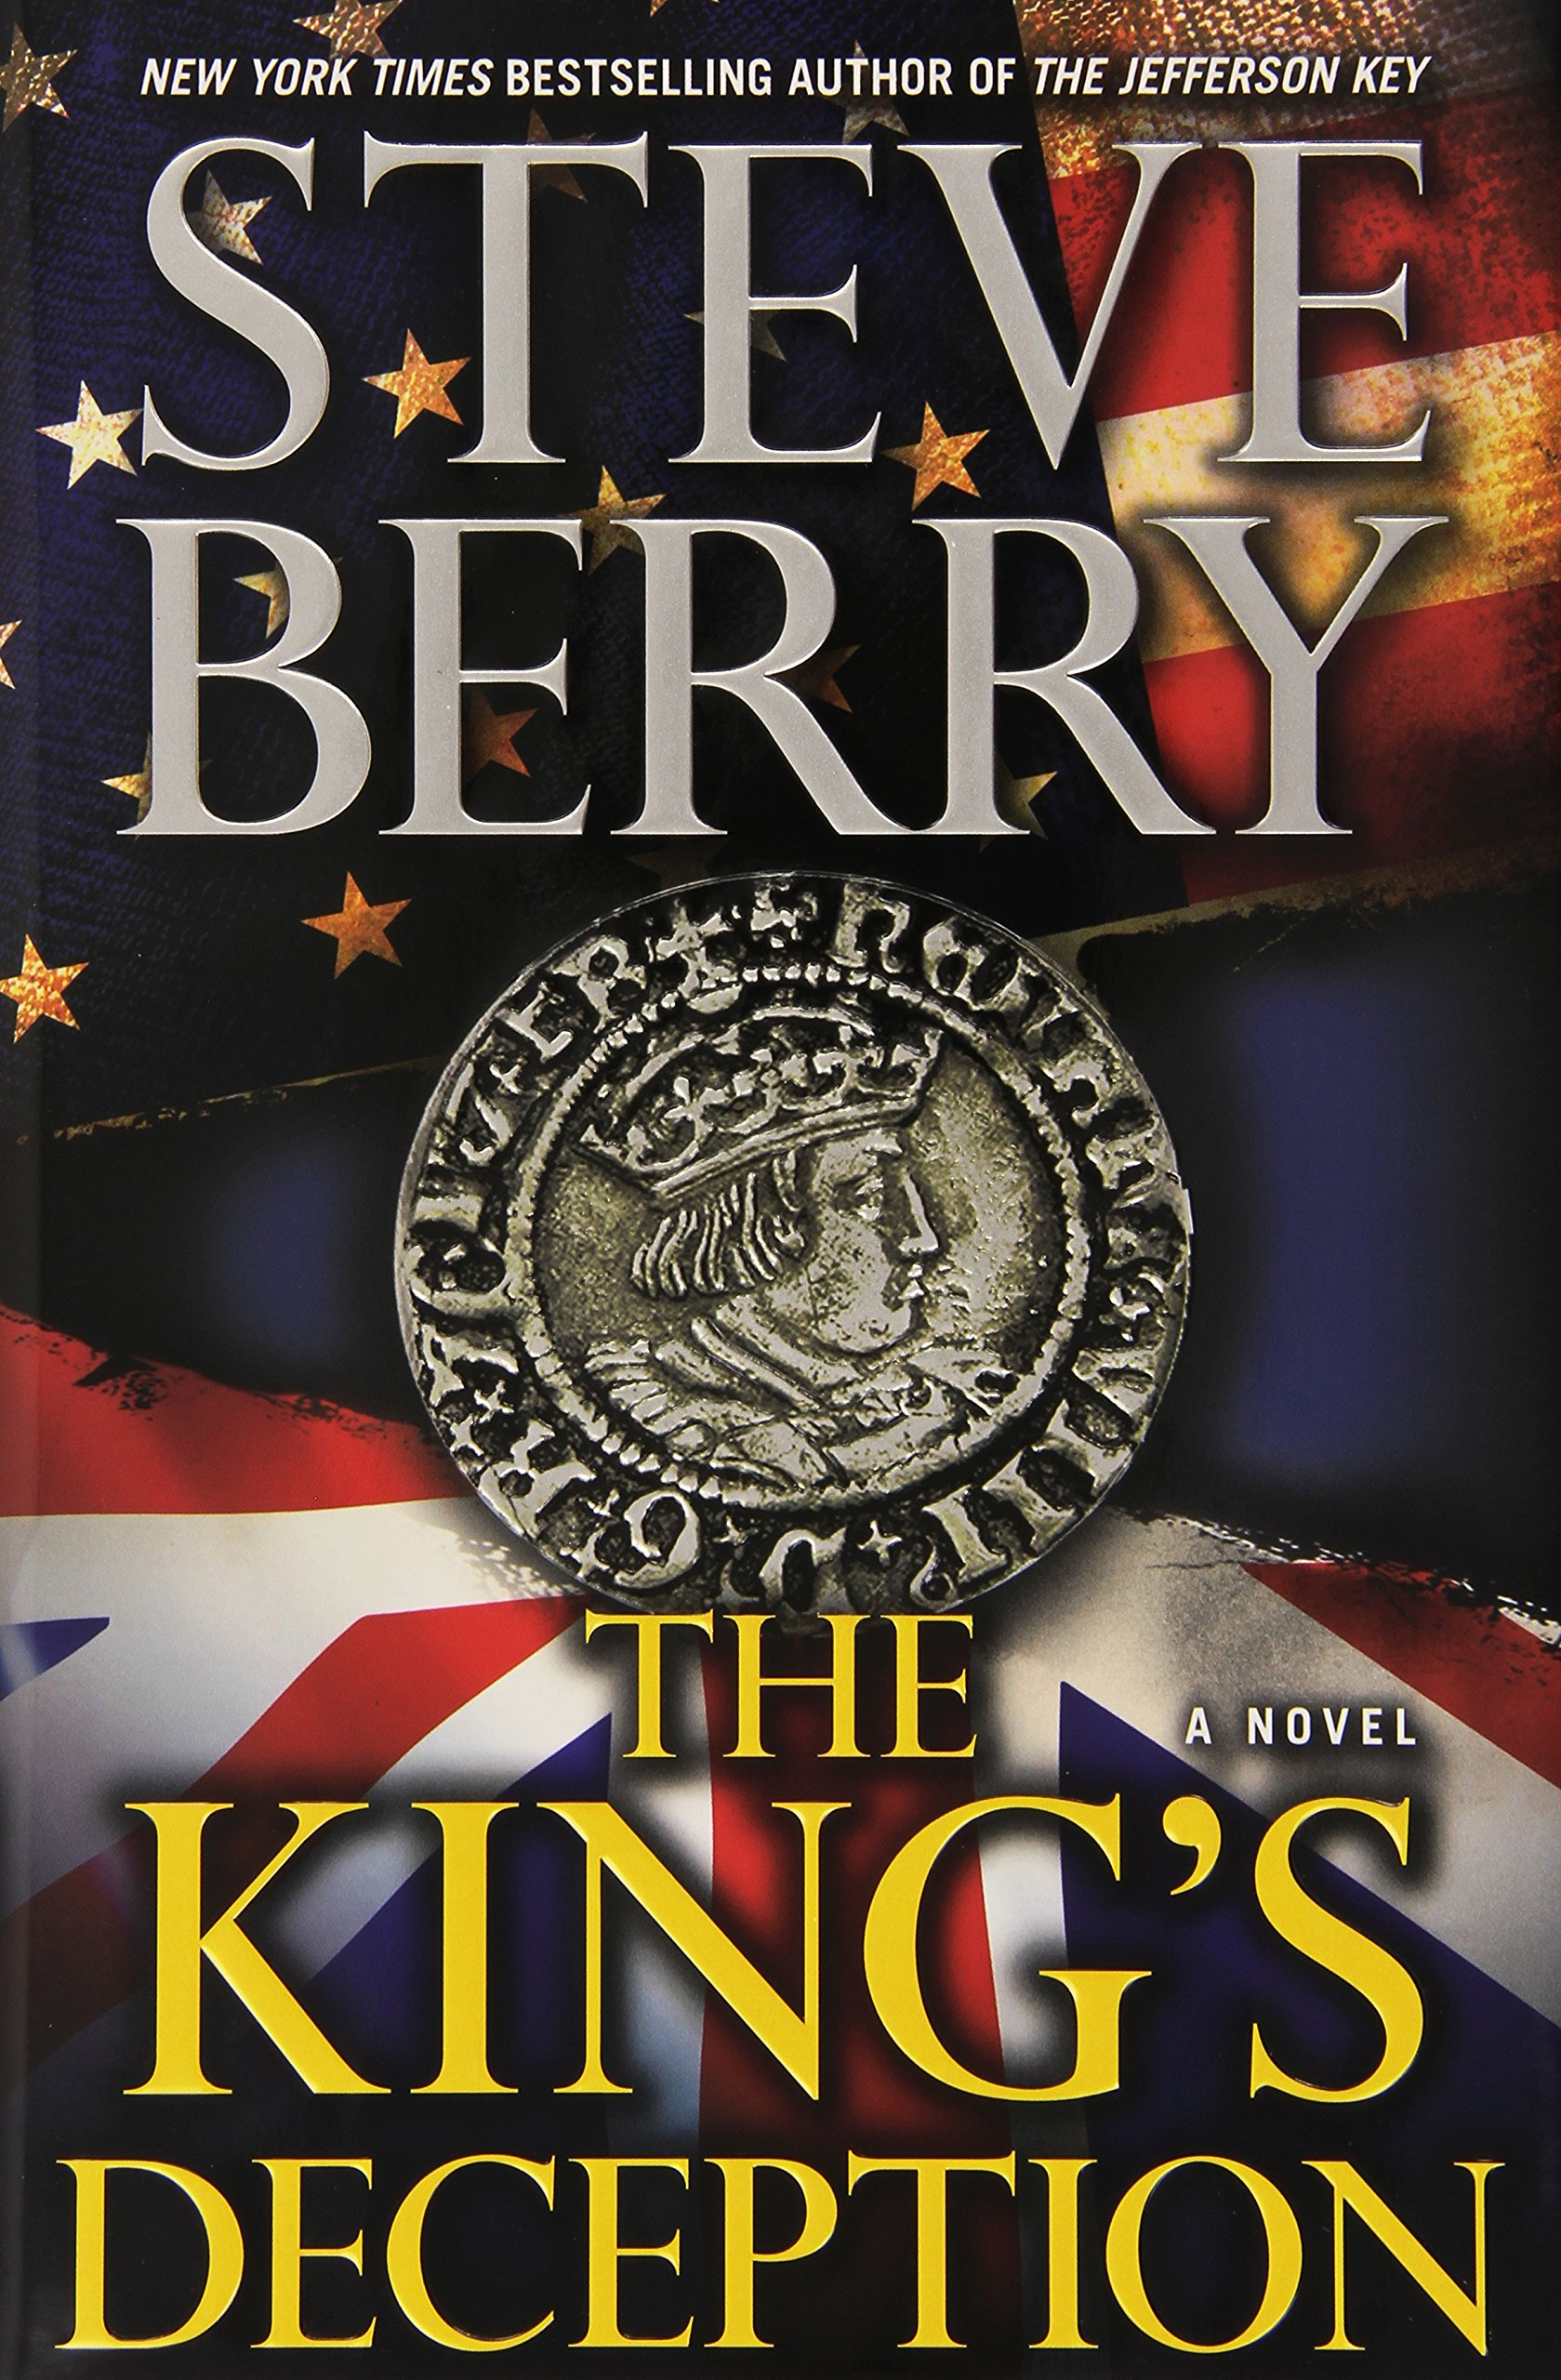 Amazon.in: Buy The King's Deception: A Novel (Cotton Malone) Book Online at  Low Prices in India | The King's Deception: A Novel (Cotton Malone) Reviews  & ...